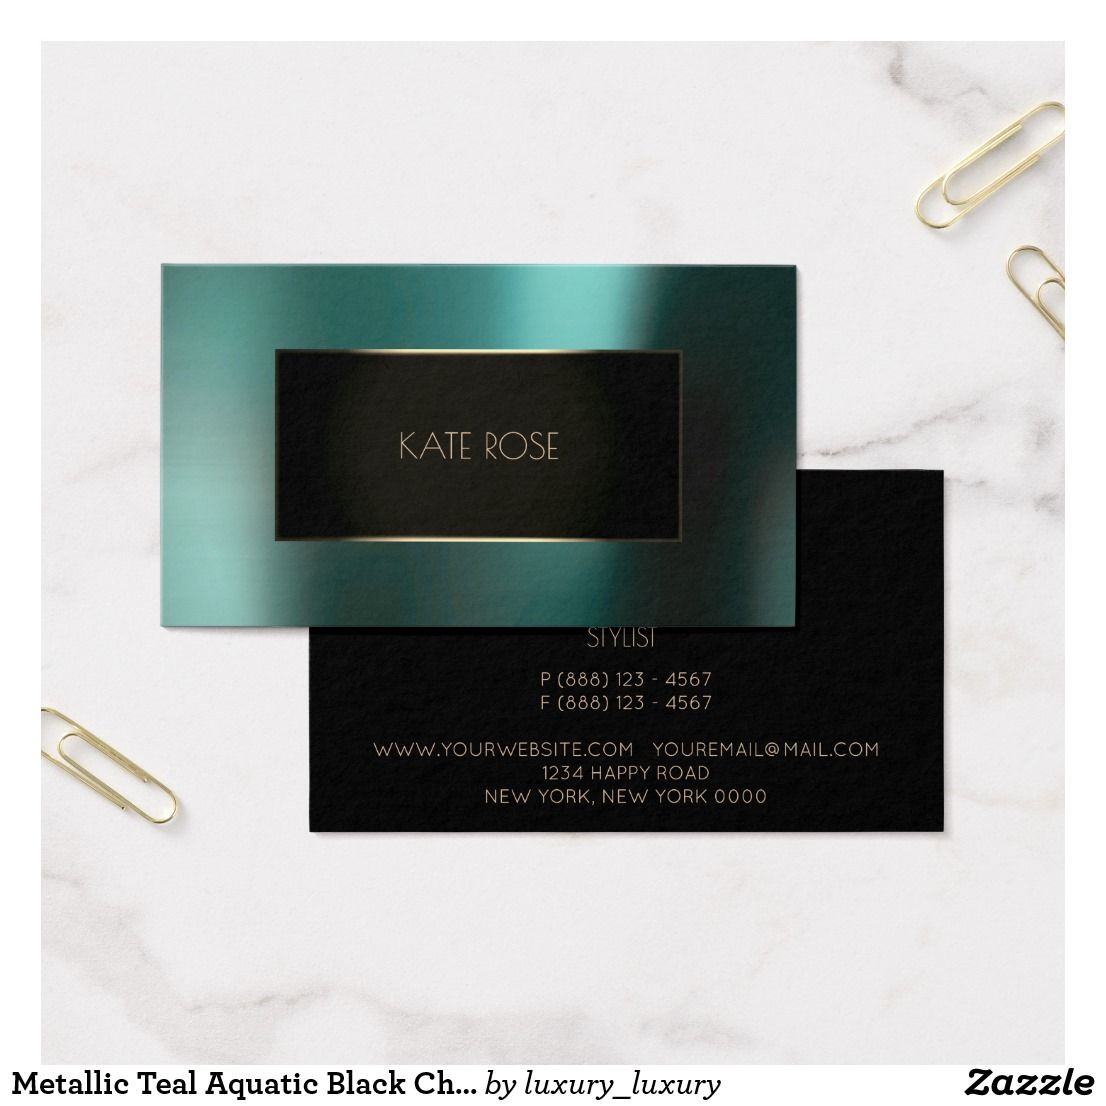 Metallic Teal Aquatic Black Champaign Frame Vip Business Card ...